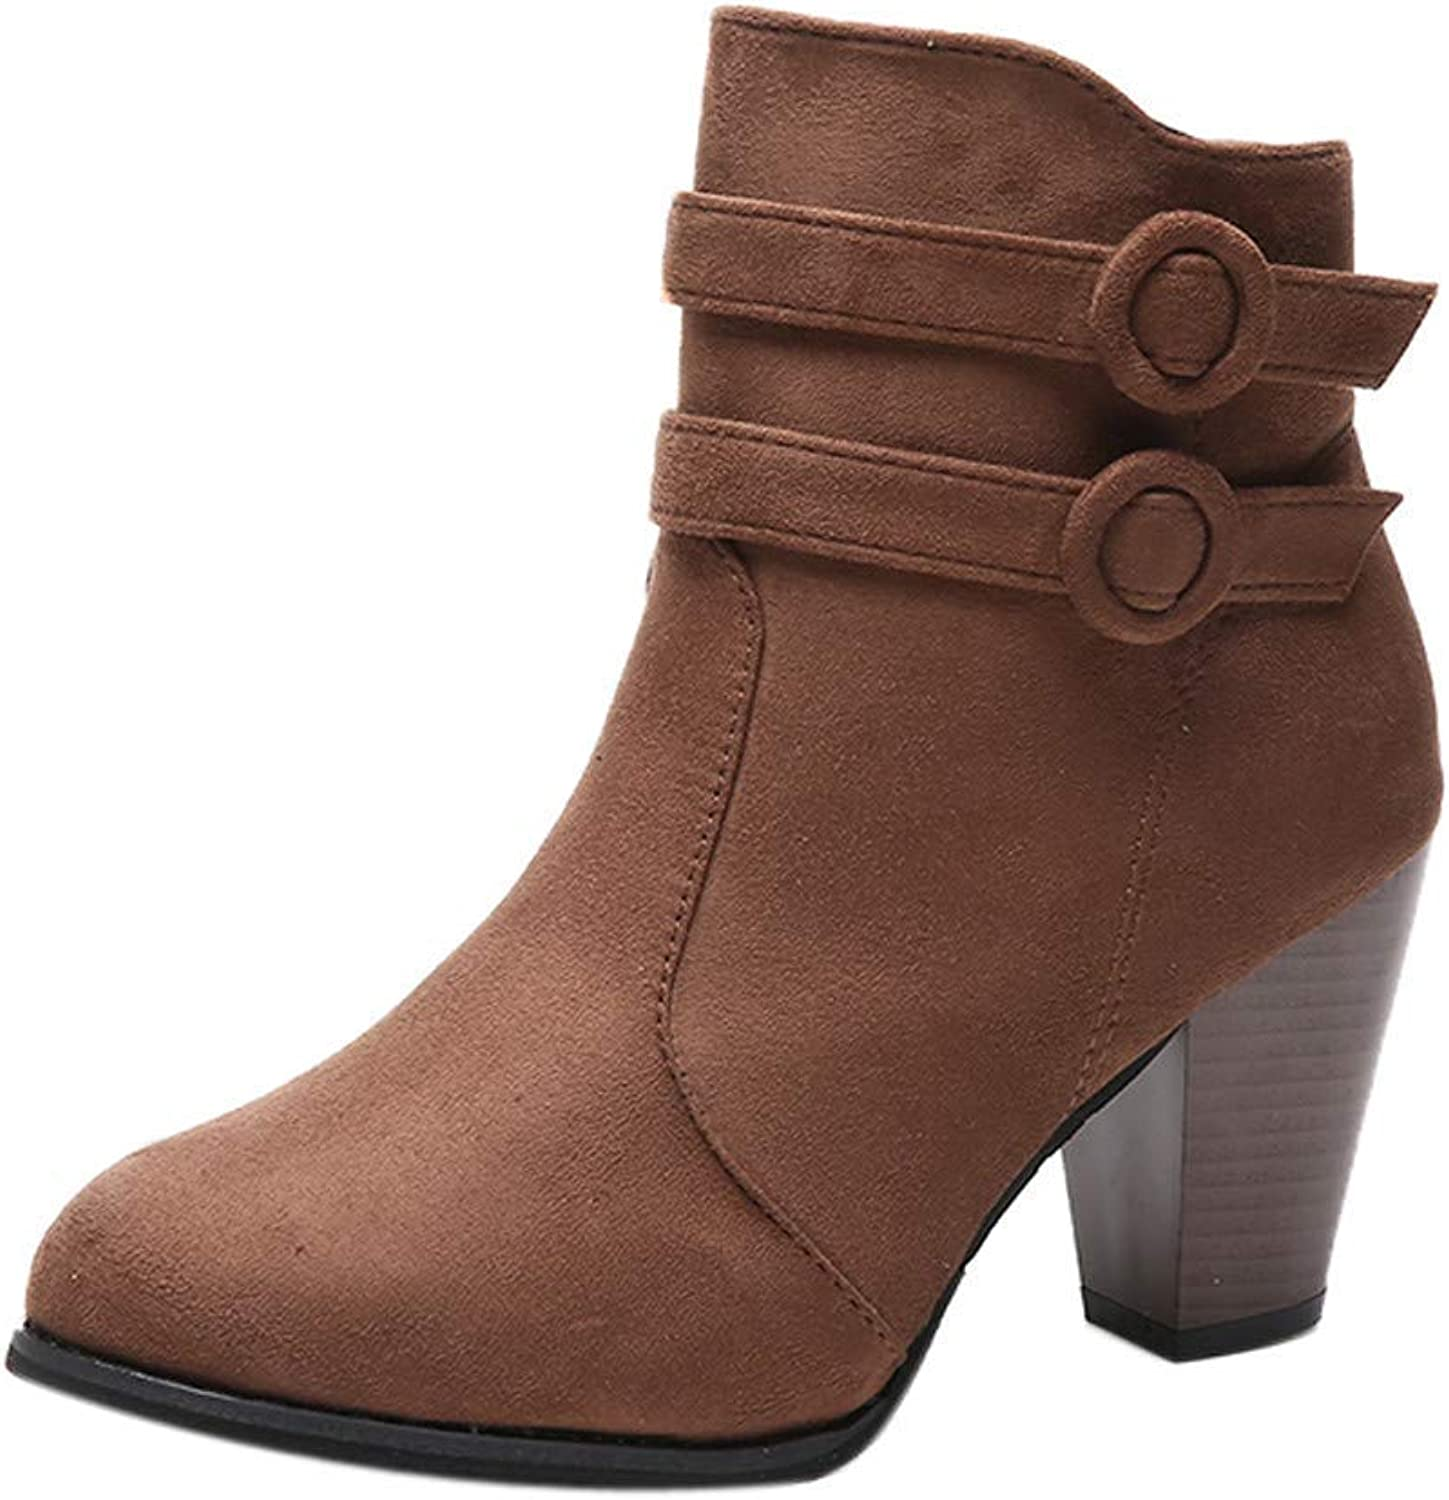 JaHGDU Women's Buckle Short Boots Knight Strong Heel Martin Boots shoes Ankle Boots Sneakers Synthetic Skin Suede Casual Fashion High Heel shoes